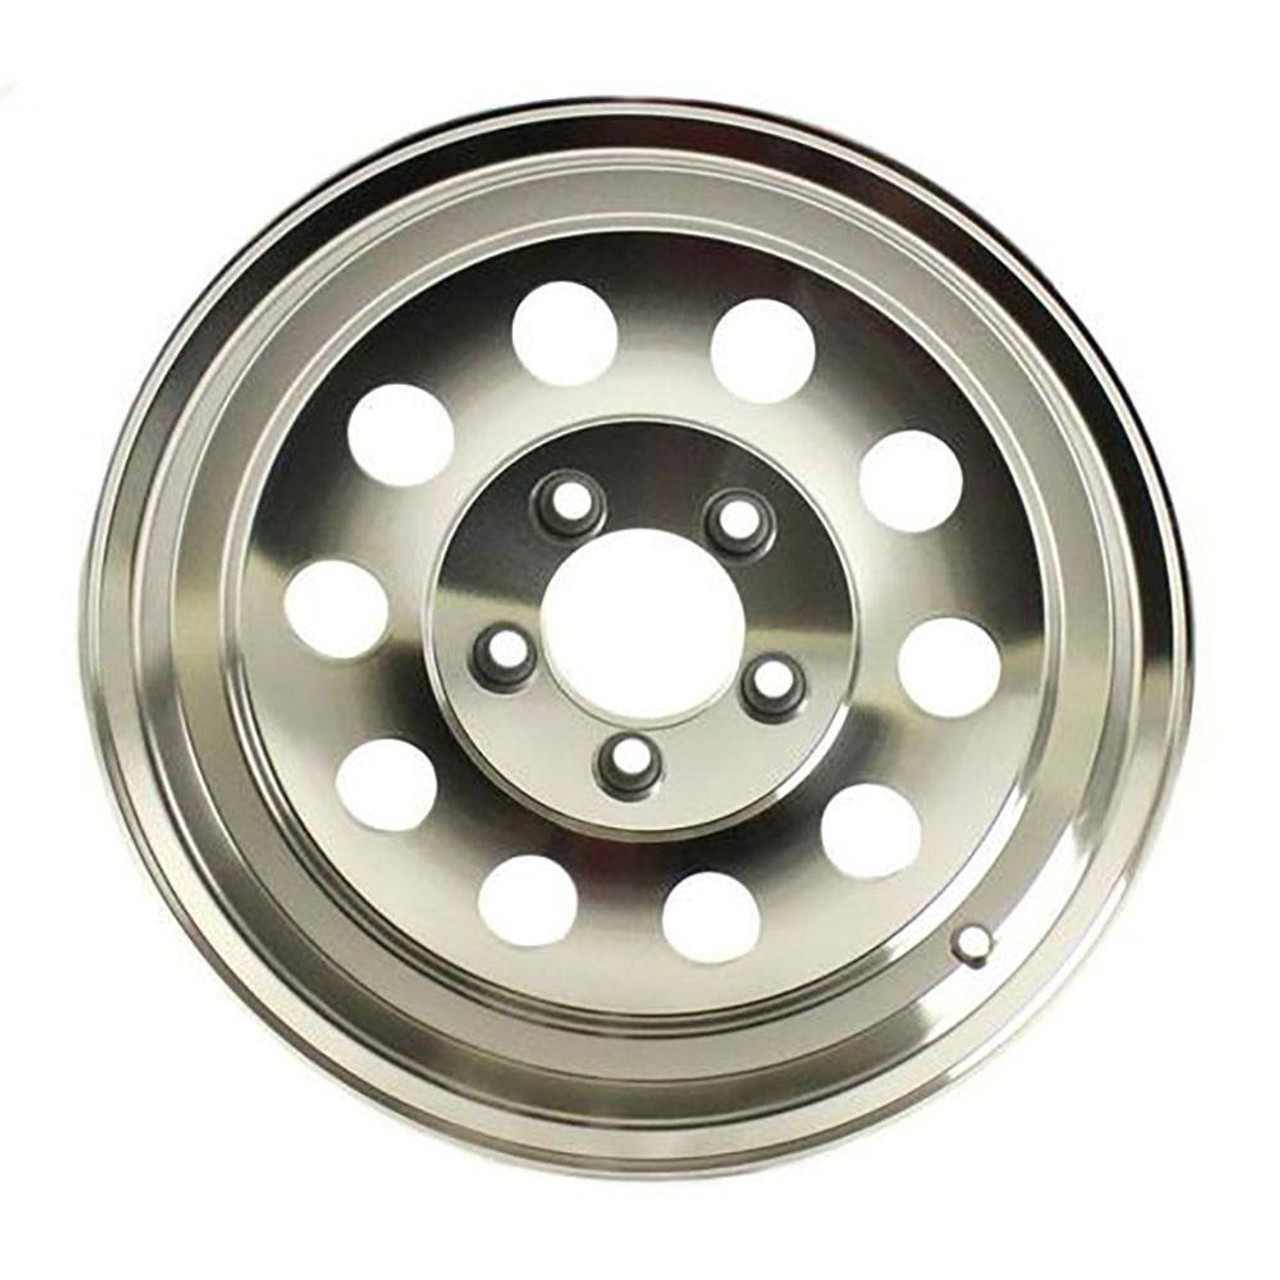 "15X6 5-Lug on 4.5"" Aluminum Series 03 Trailer Wheel - 356545"